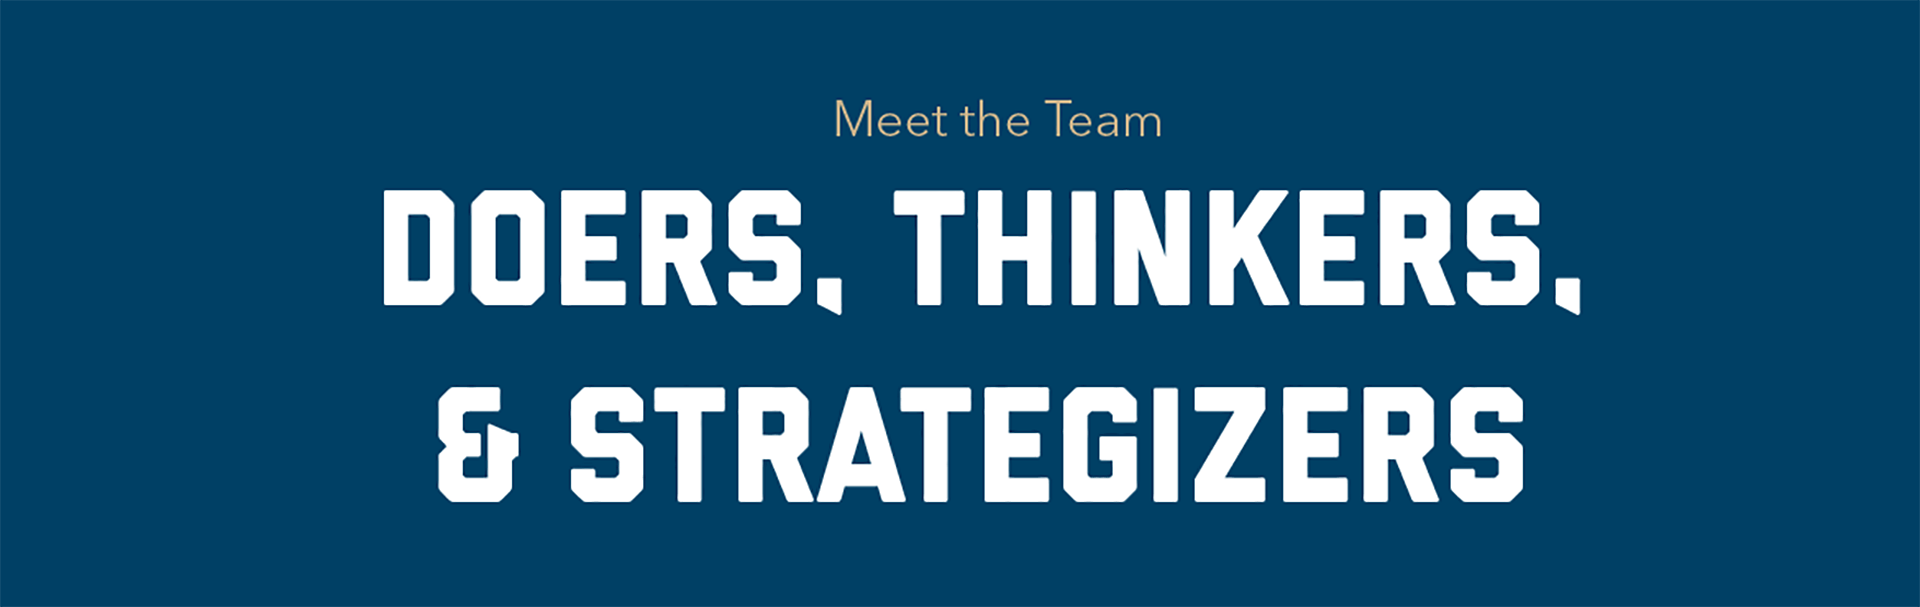 Doers, Thinkers and Strategizers